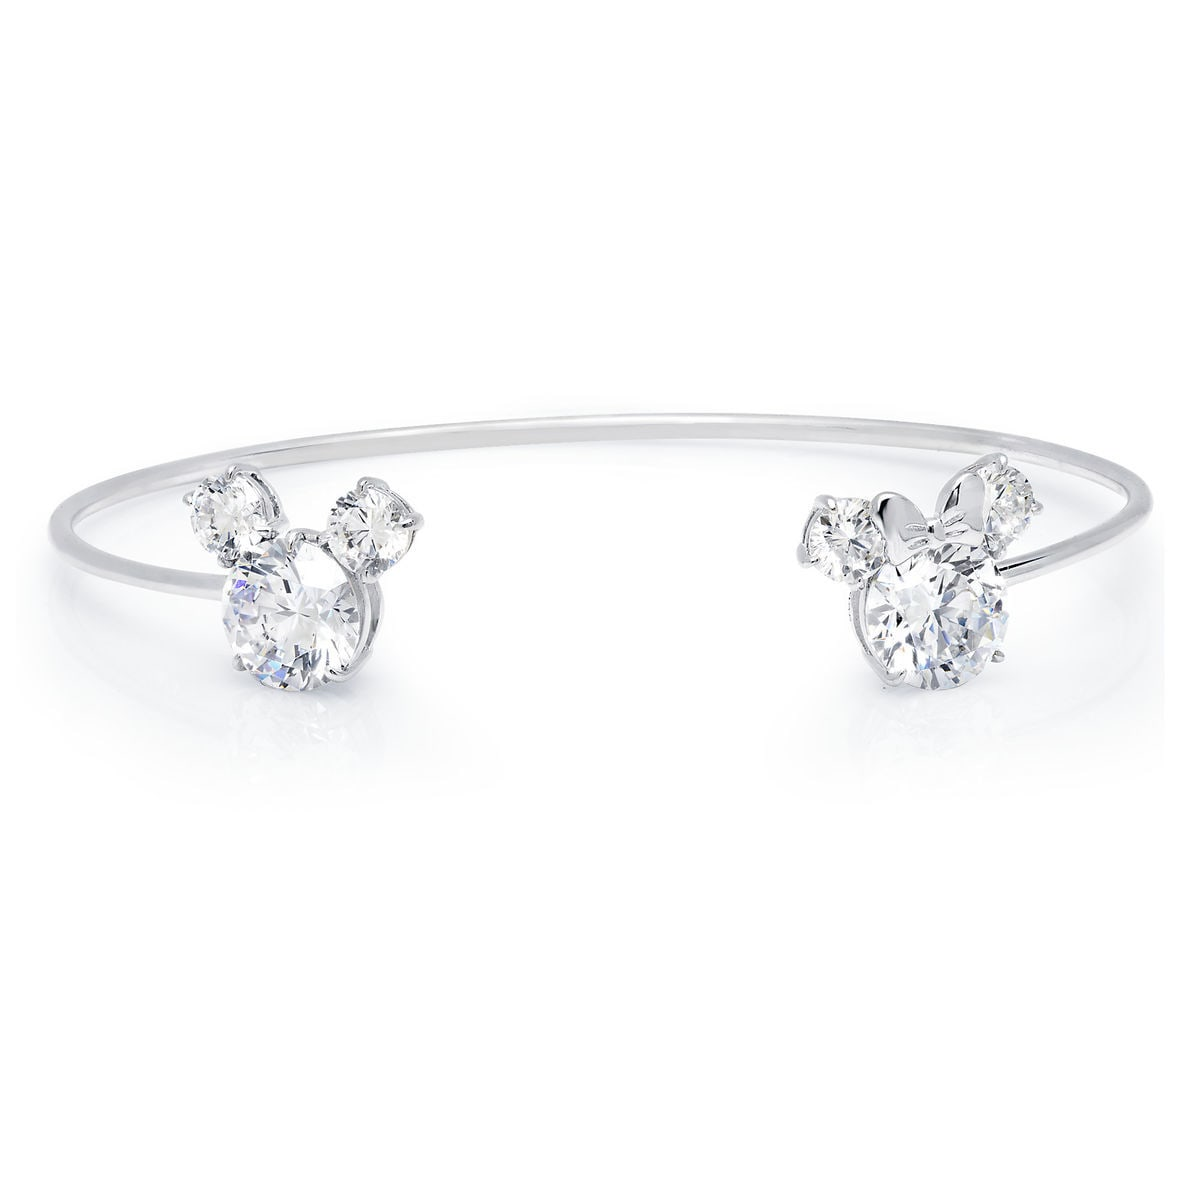 Product Image Of Mickey And Minnie Mouse Cuff Bracelet By Crislu Platinum 1